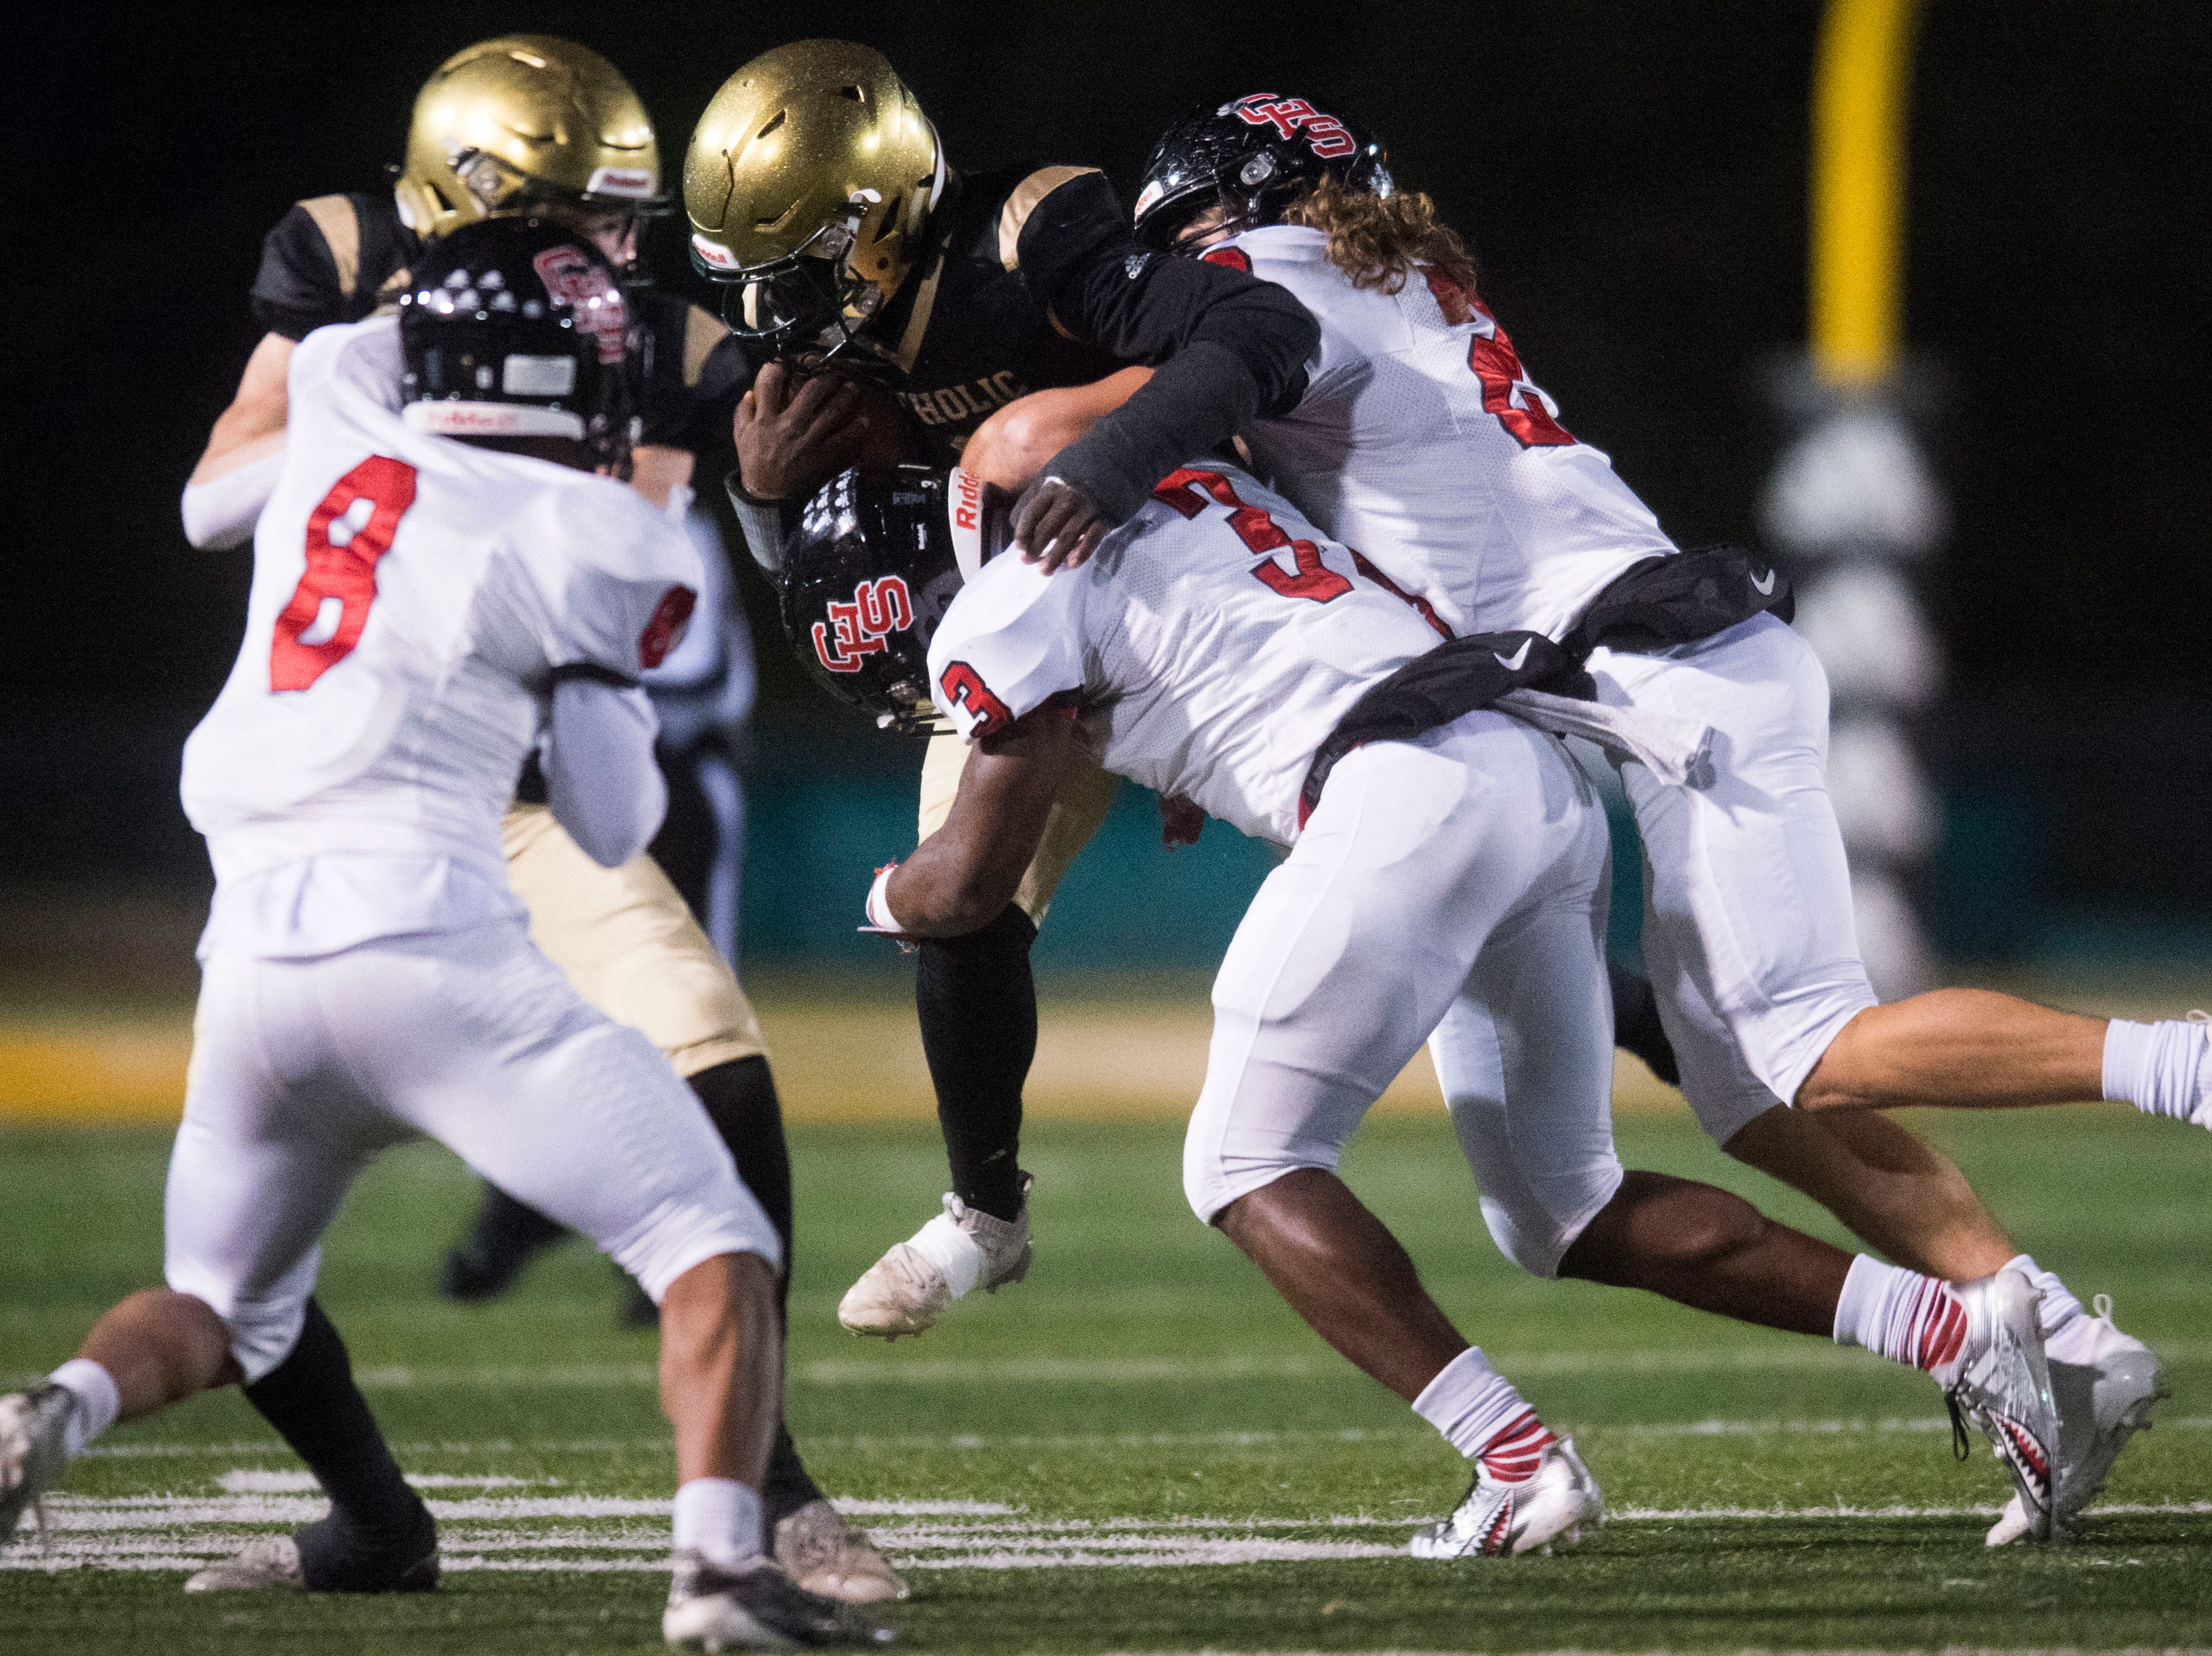 Central players take down a Catholic player during a Class 5A semifinal game between Central at Catholic Friday, Nov. 23, 2018. Central defeated Catholic 24-19.